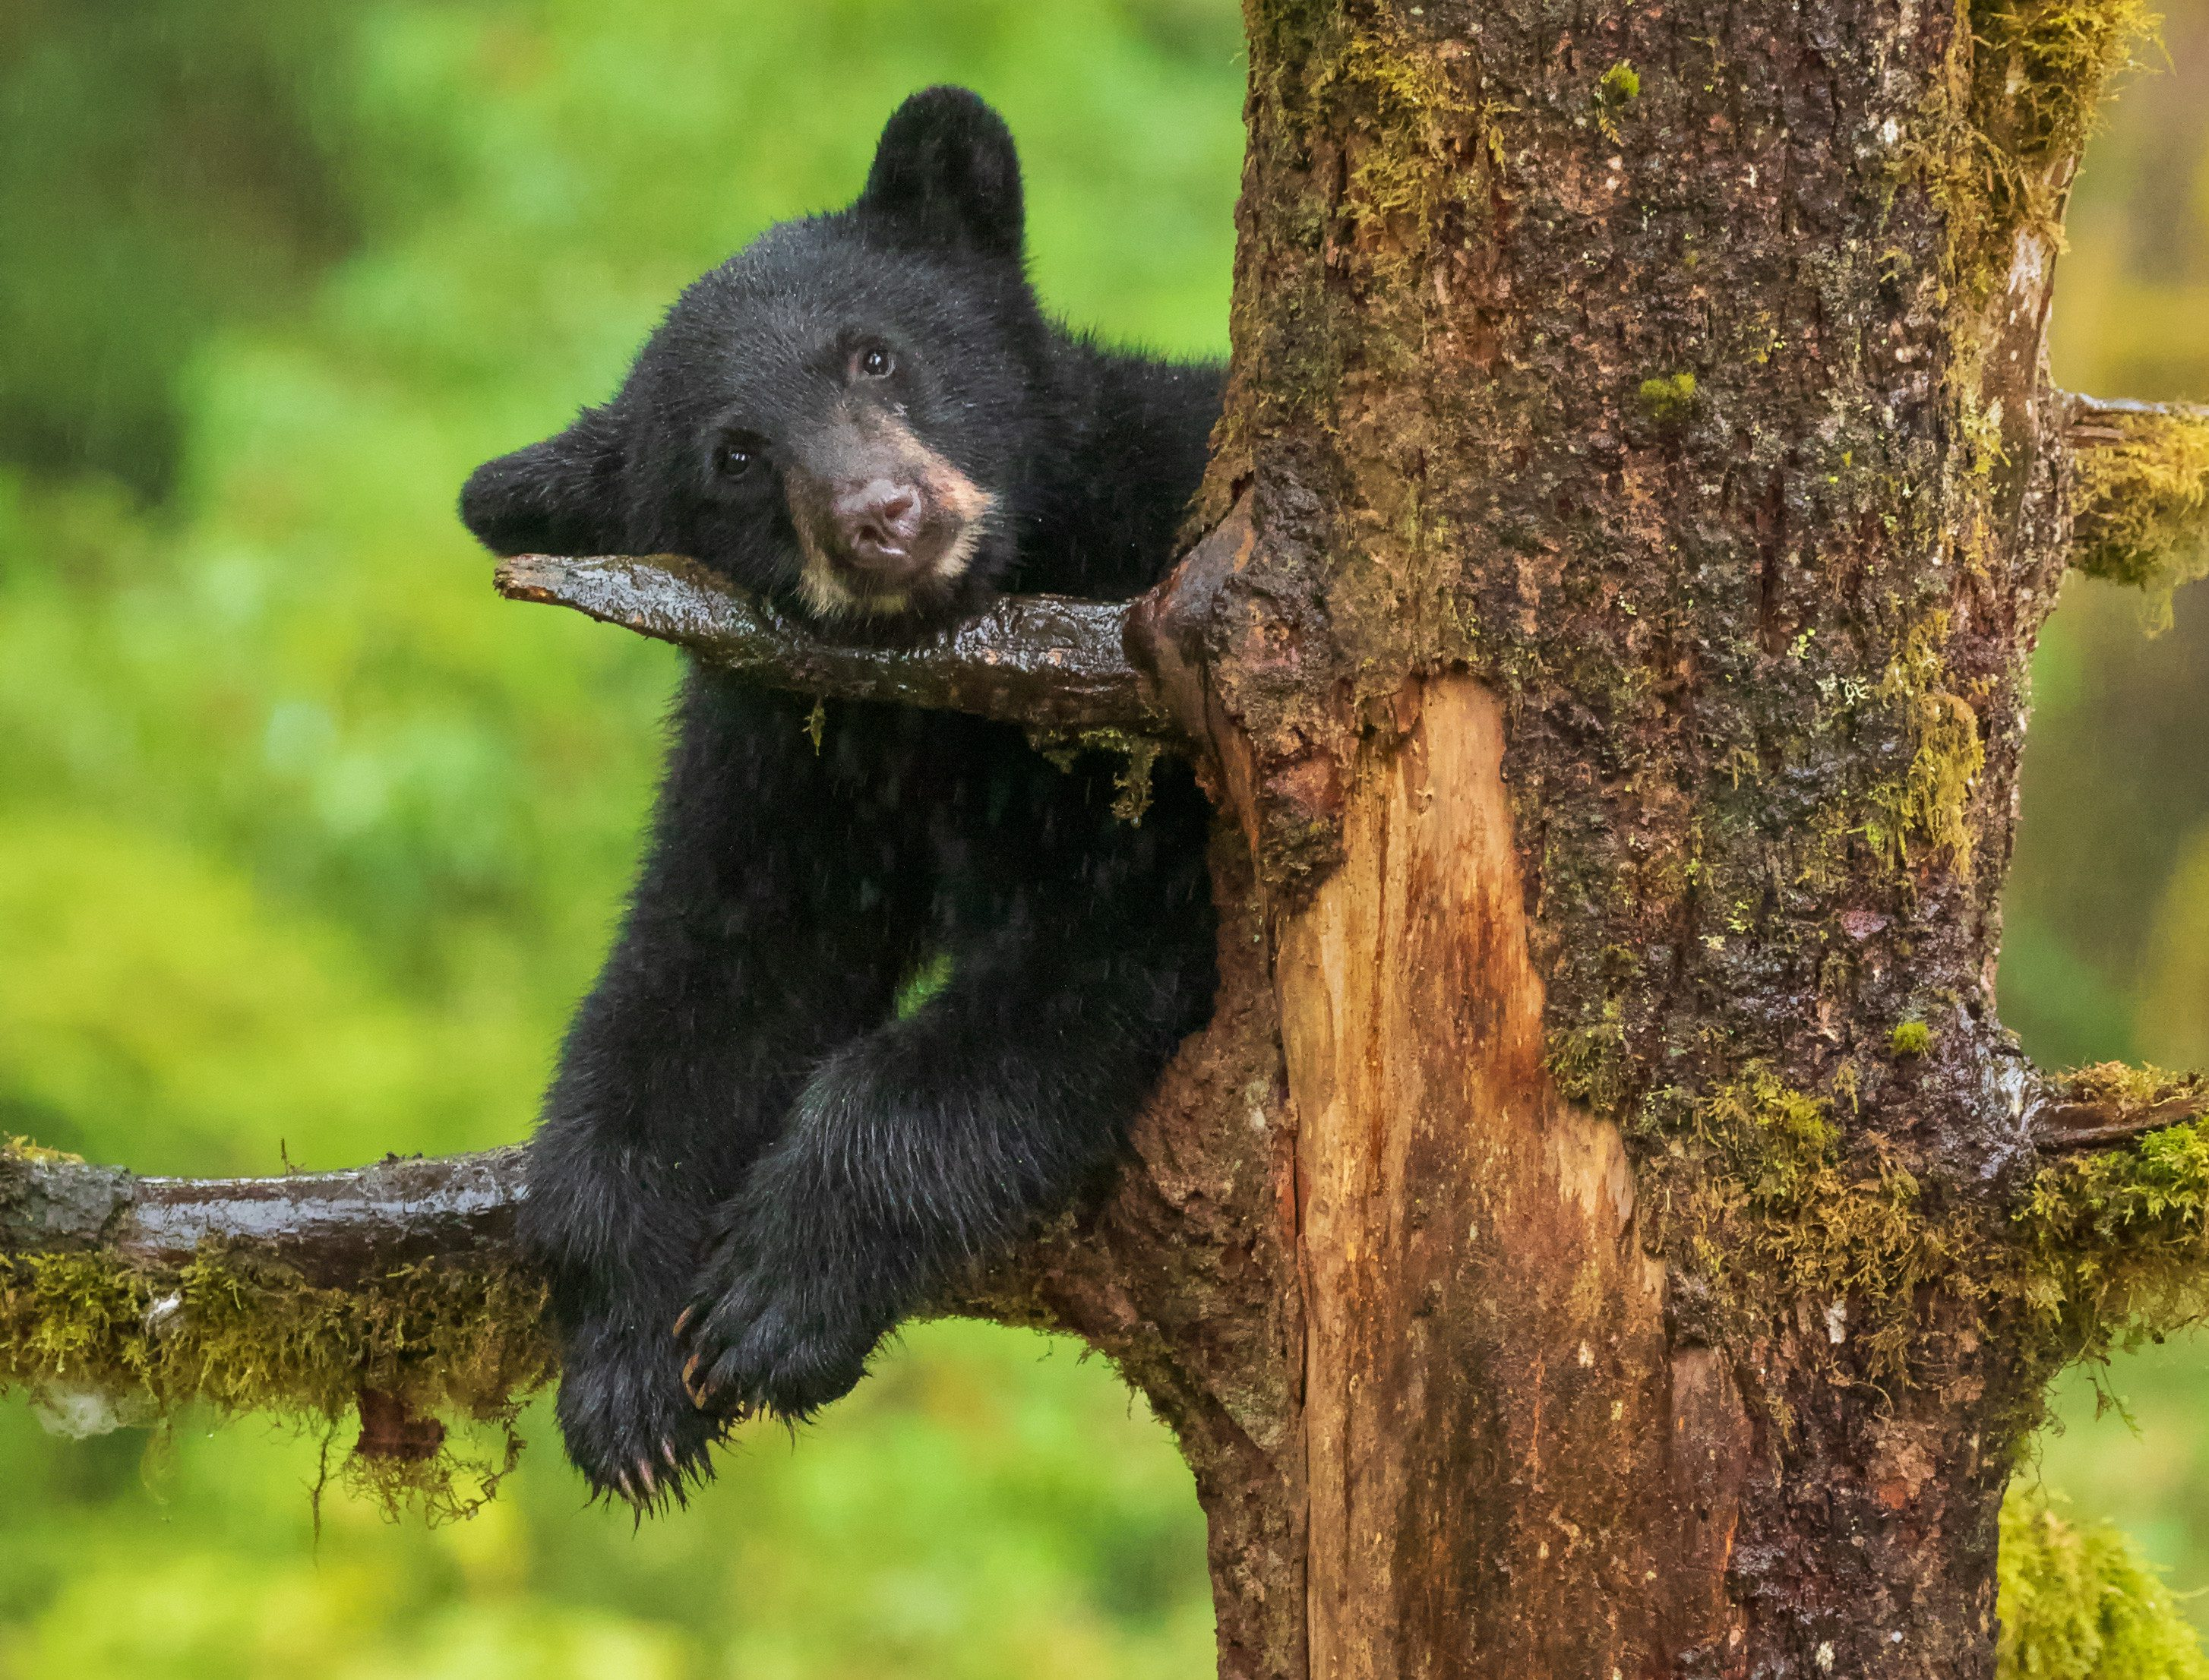 Black bear cub resting its head on tree branch in the rain.